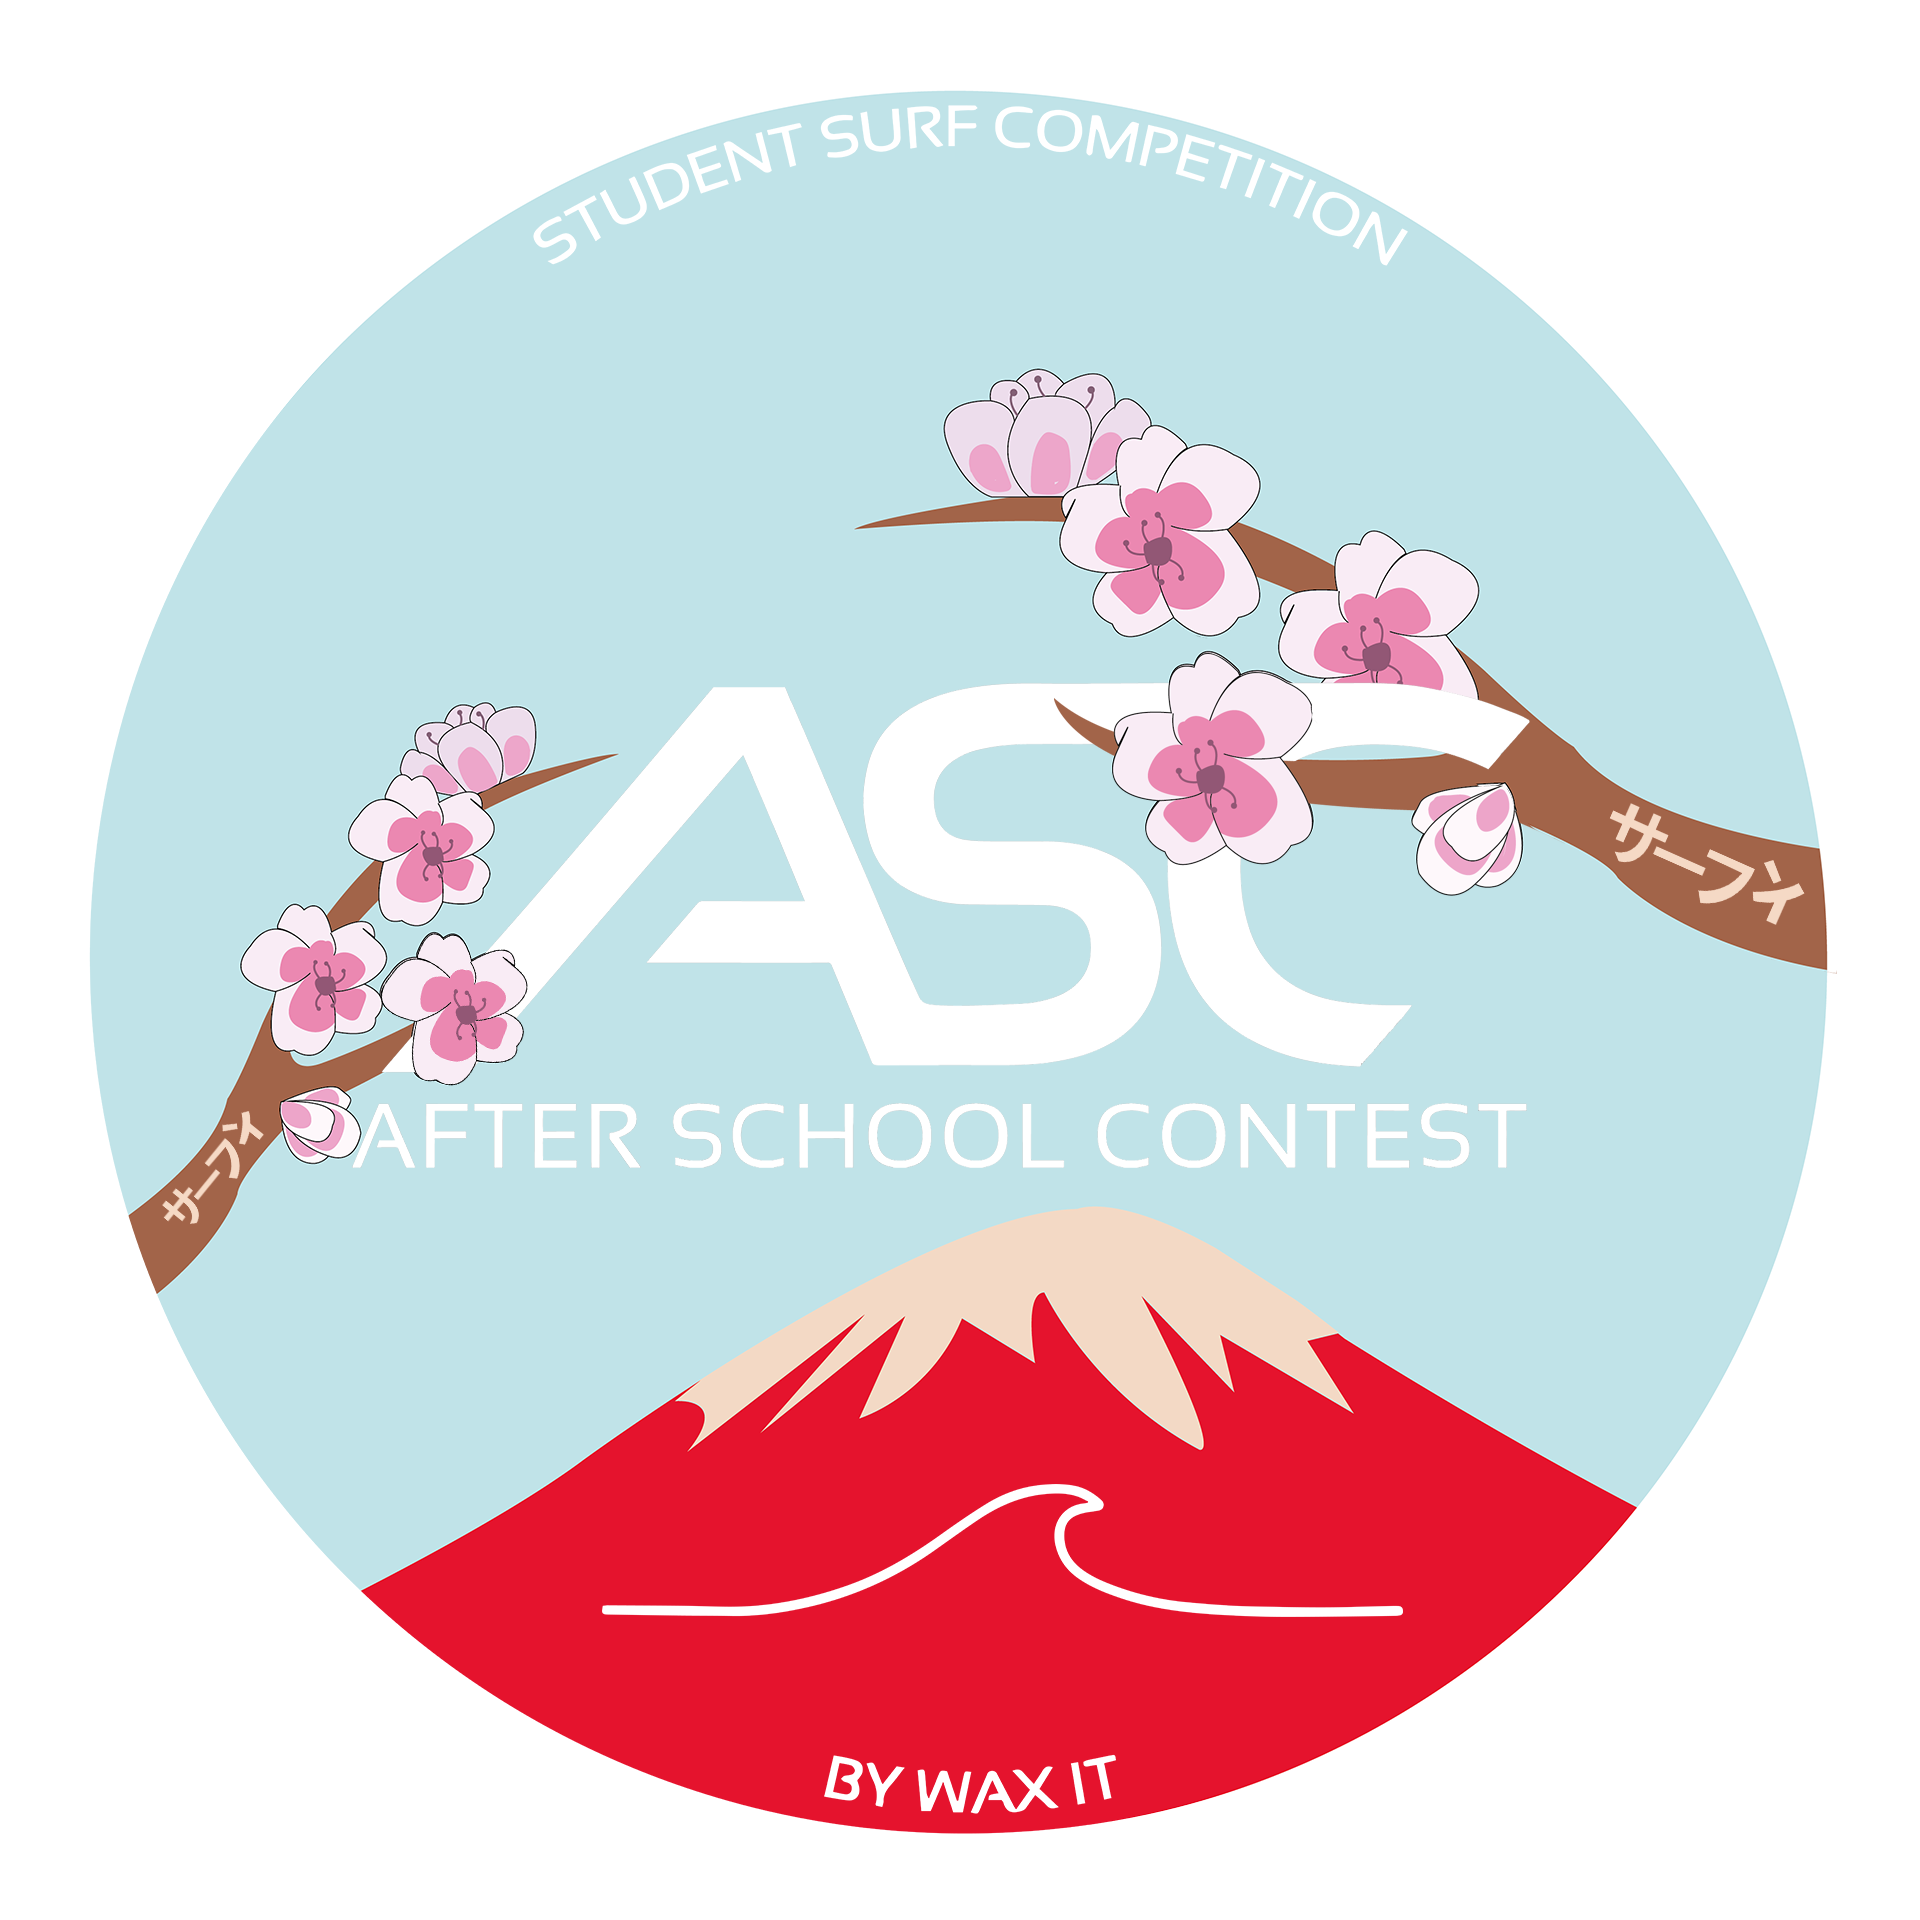 After School Contest